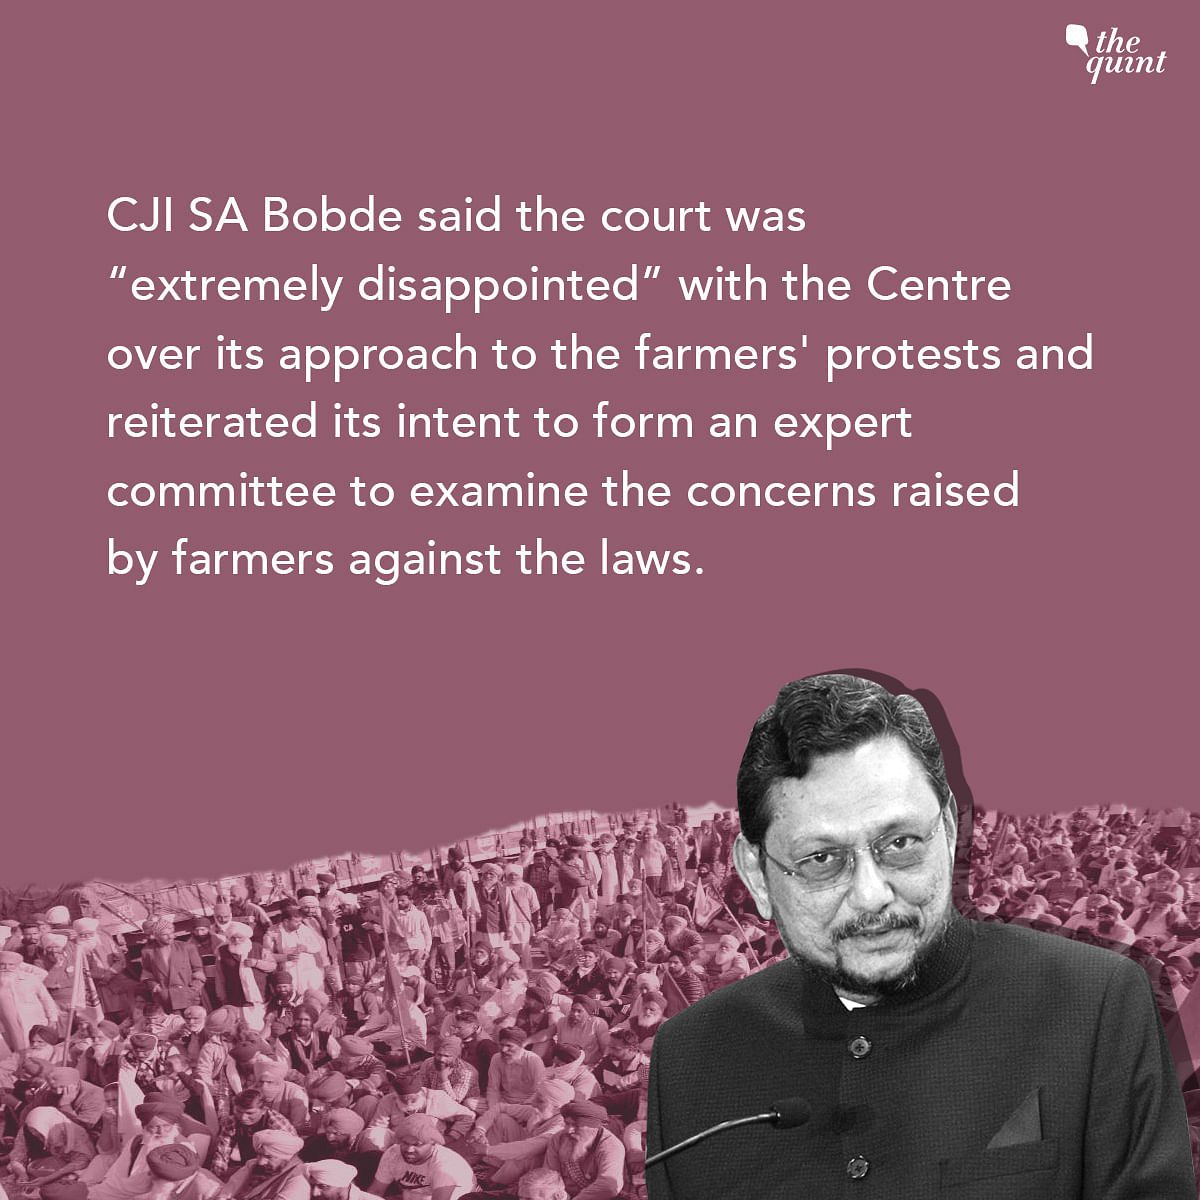 SC 'Extremely Disappointed' With Centre on Farmers' Protests: CJI